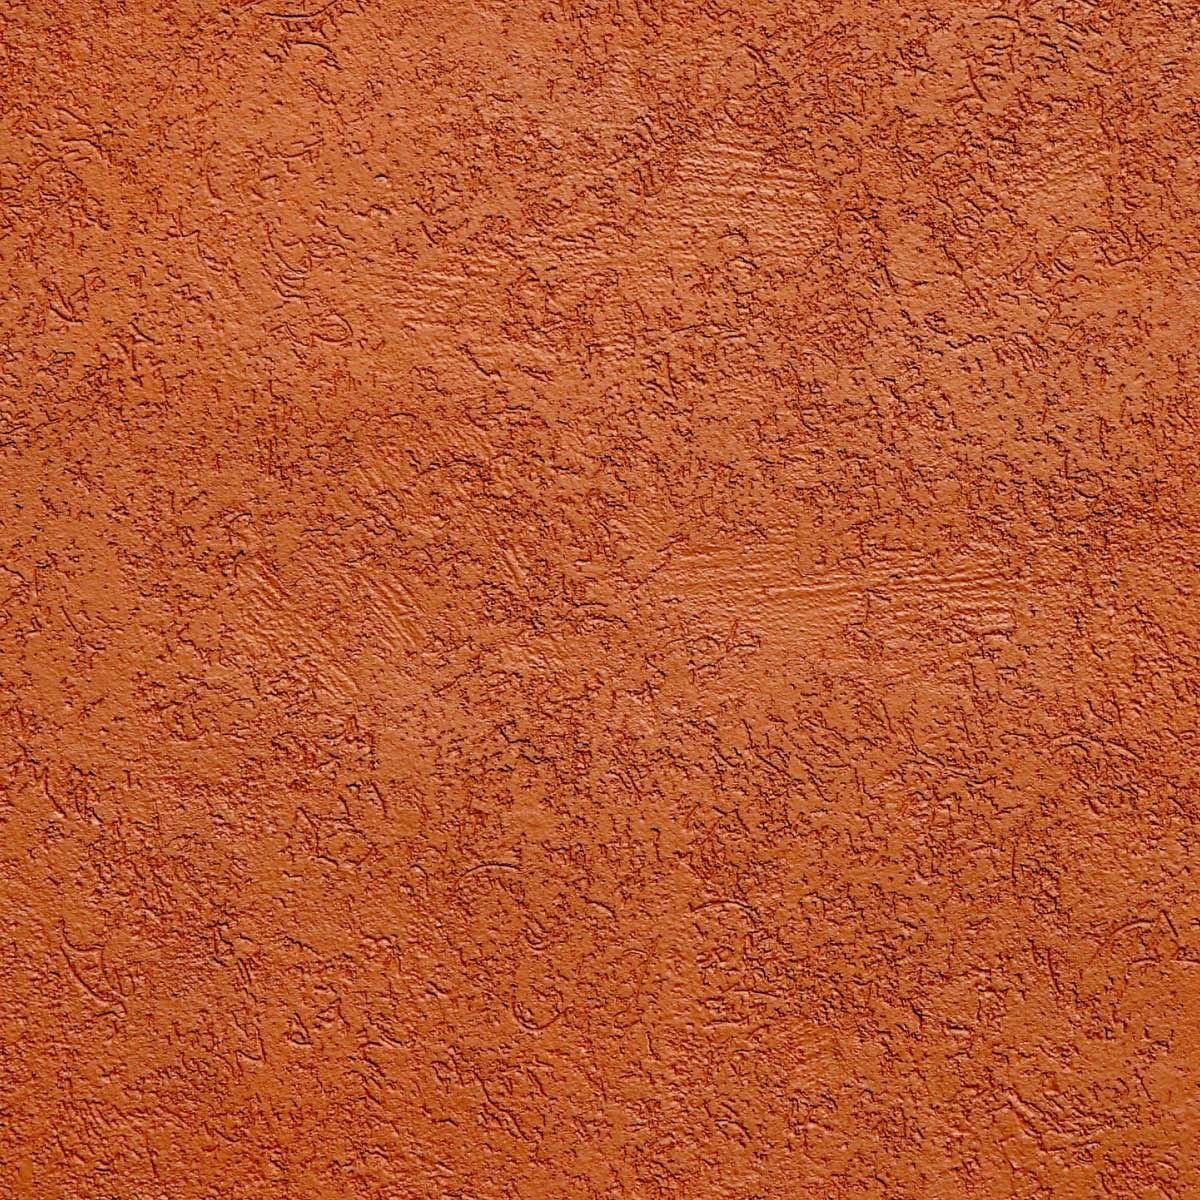 rust colored textured stucco wall design and